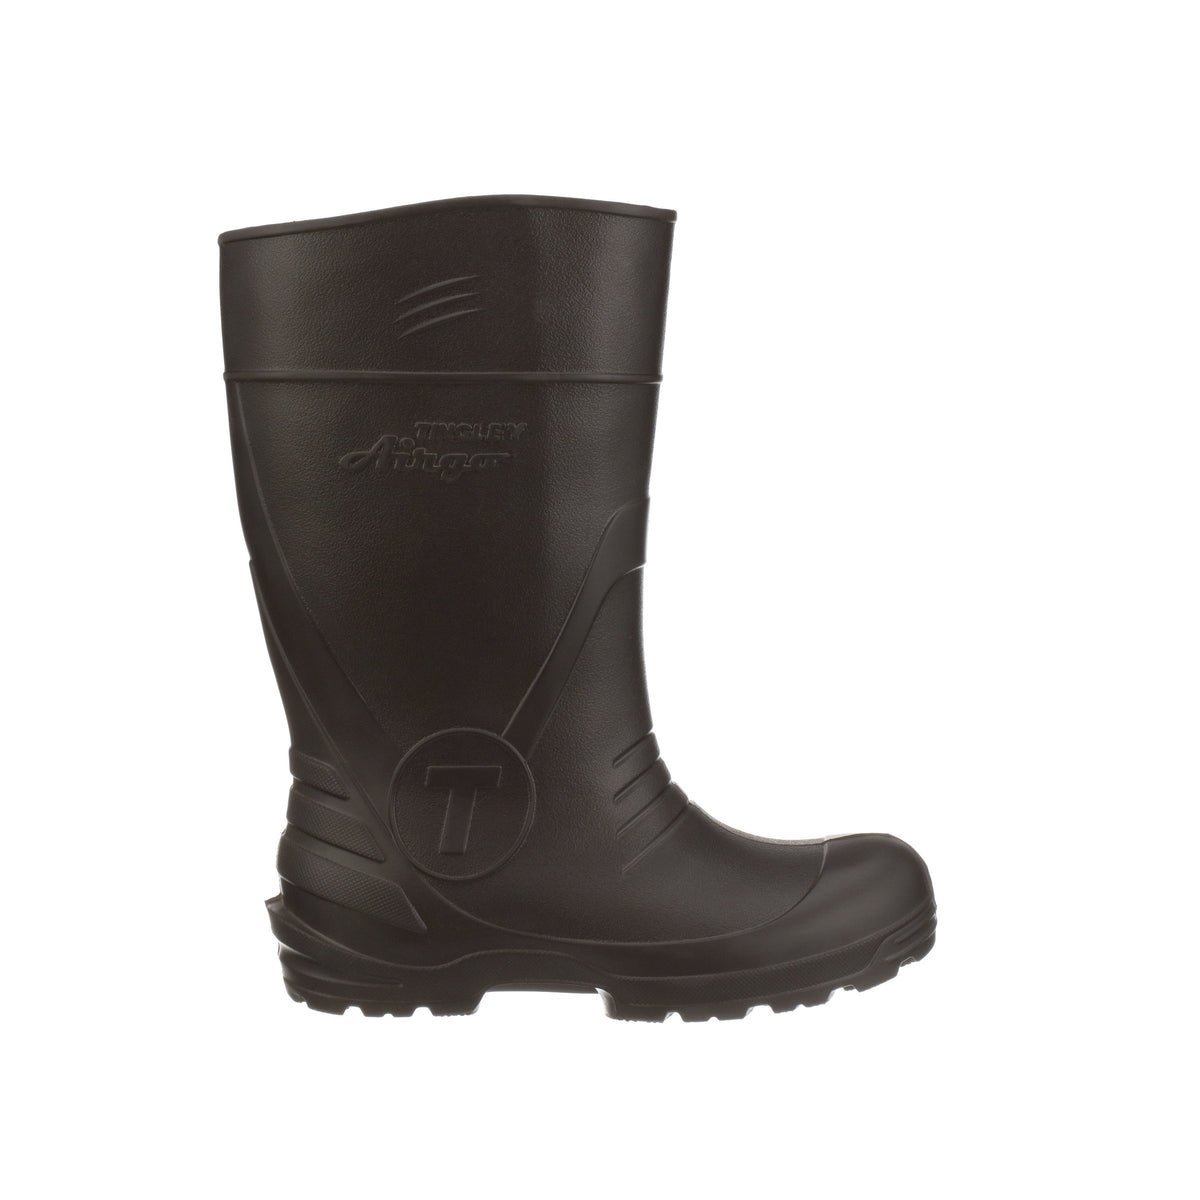 TINGLEY AIRGO ULTRA LIGHTWEIGHT BOOTS BROWN